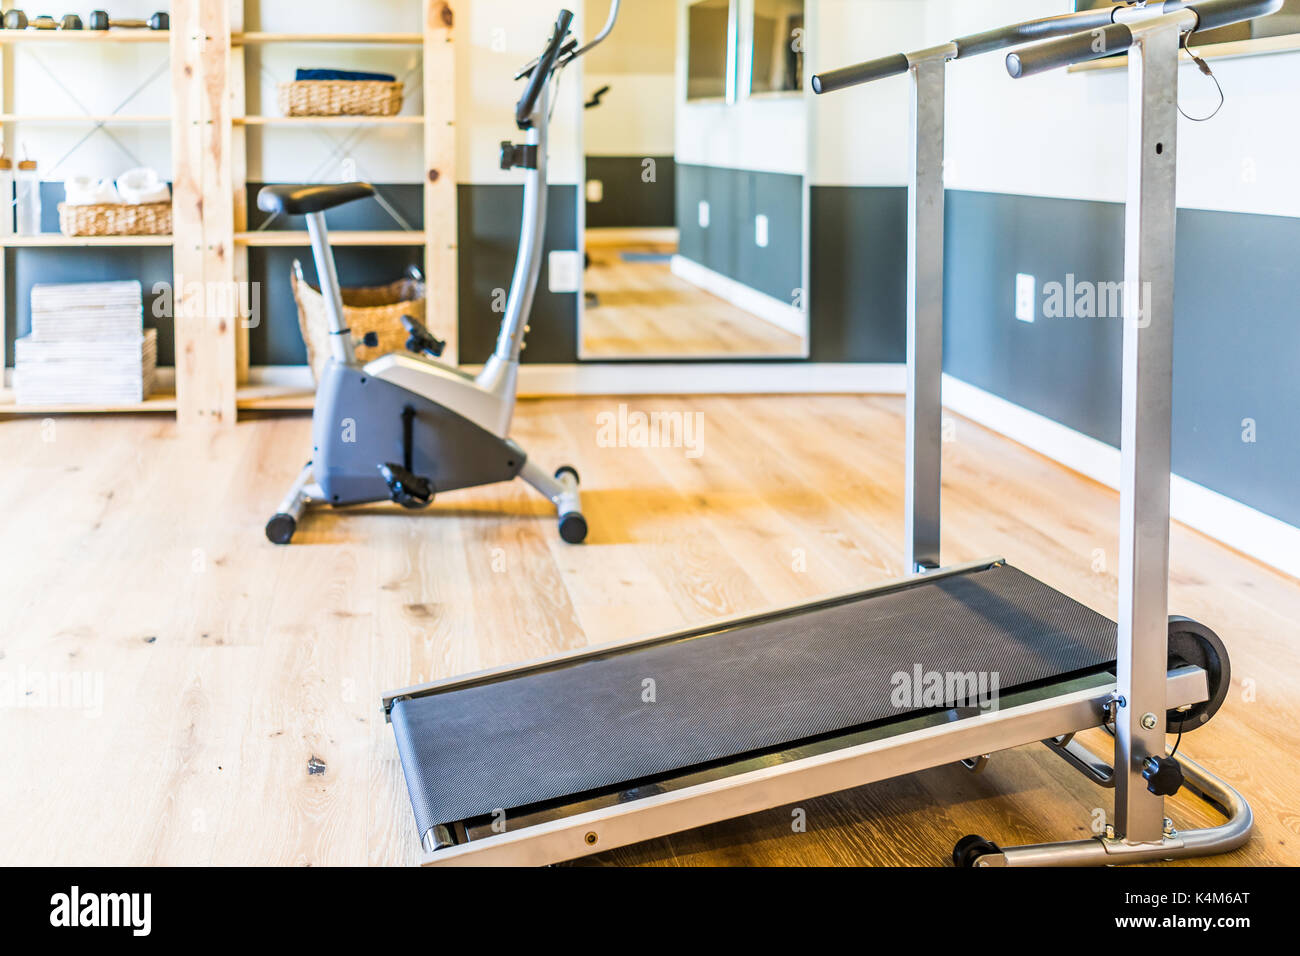 Home gym with treadmill mirror and bicycle machine with sunlight